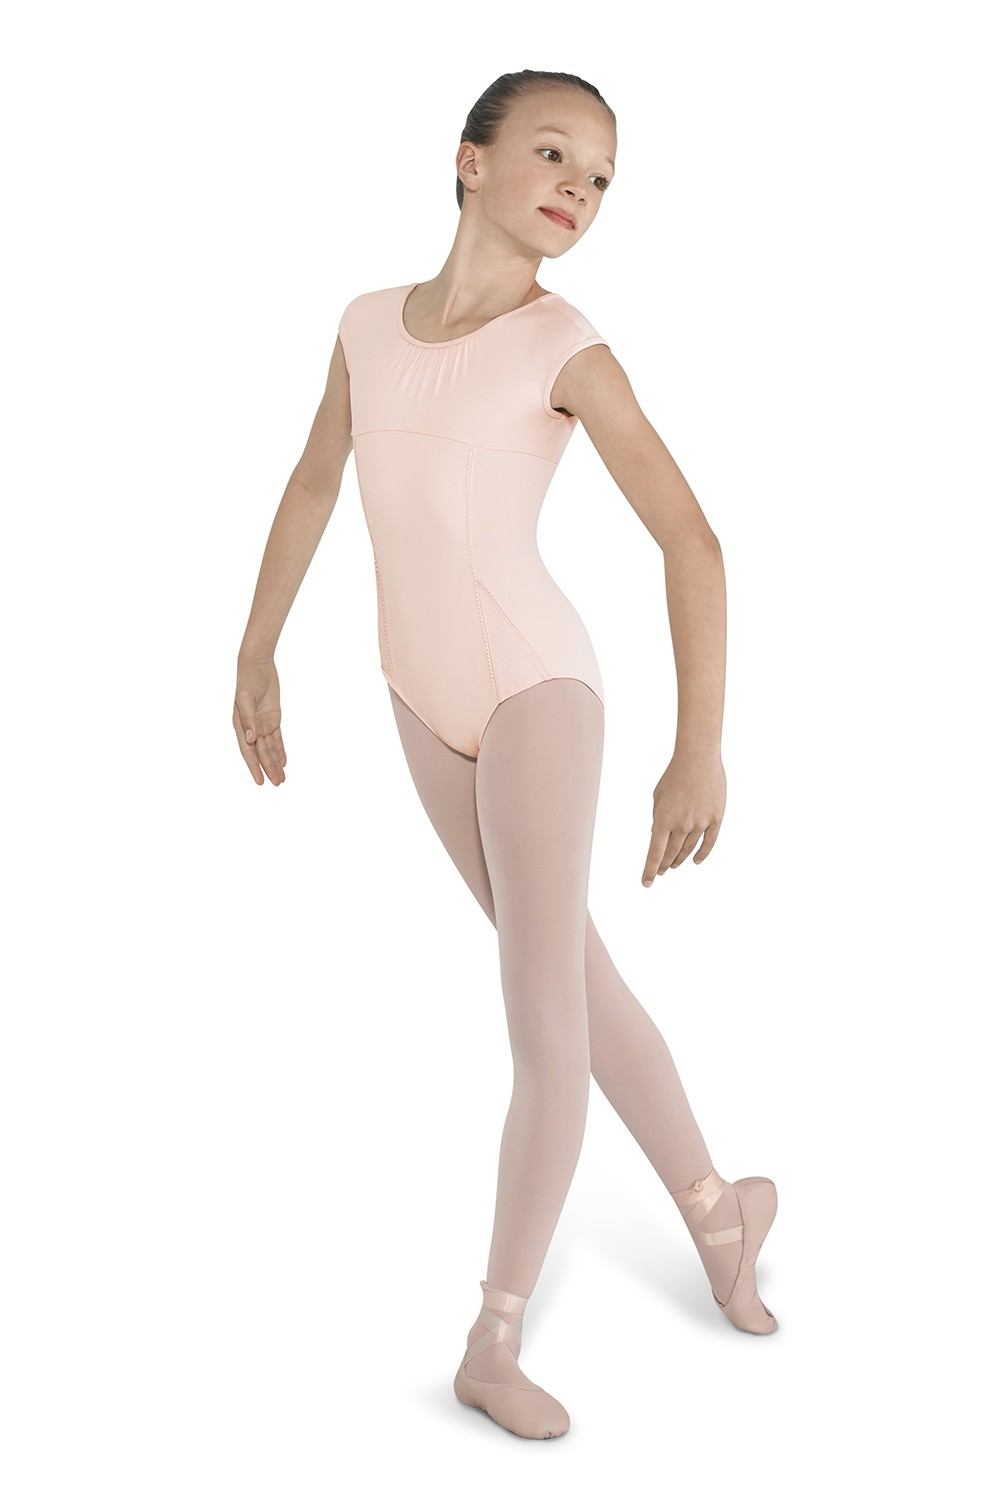 Picot Trim Cap Sleeve Children's Dance Leotards